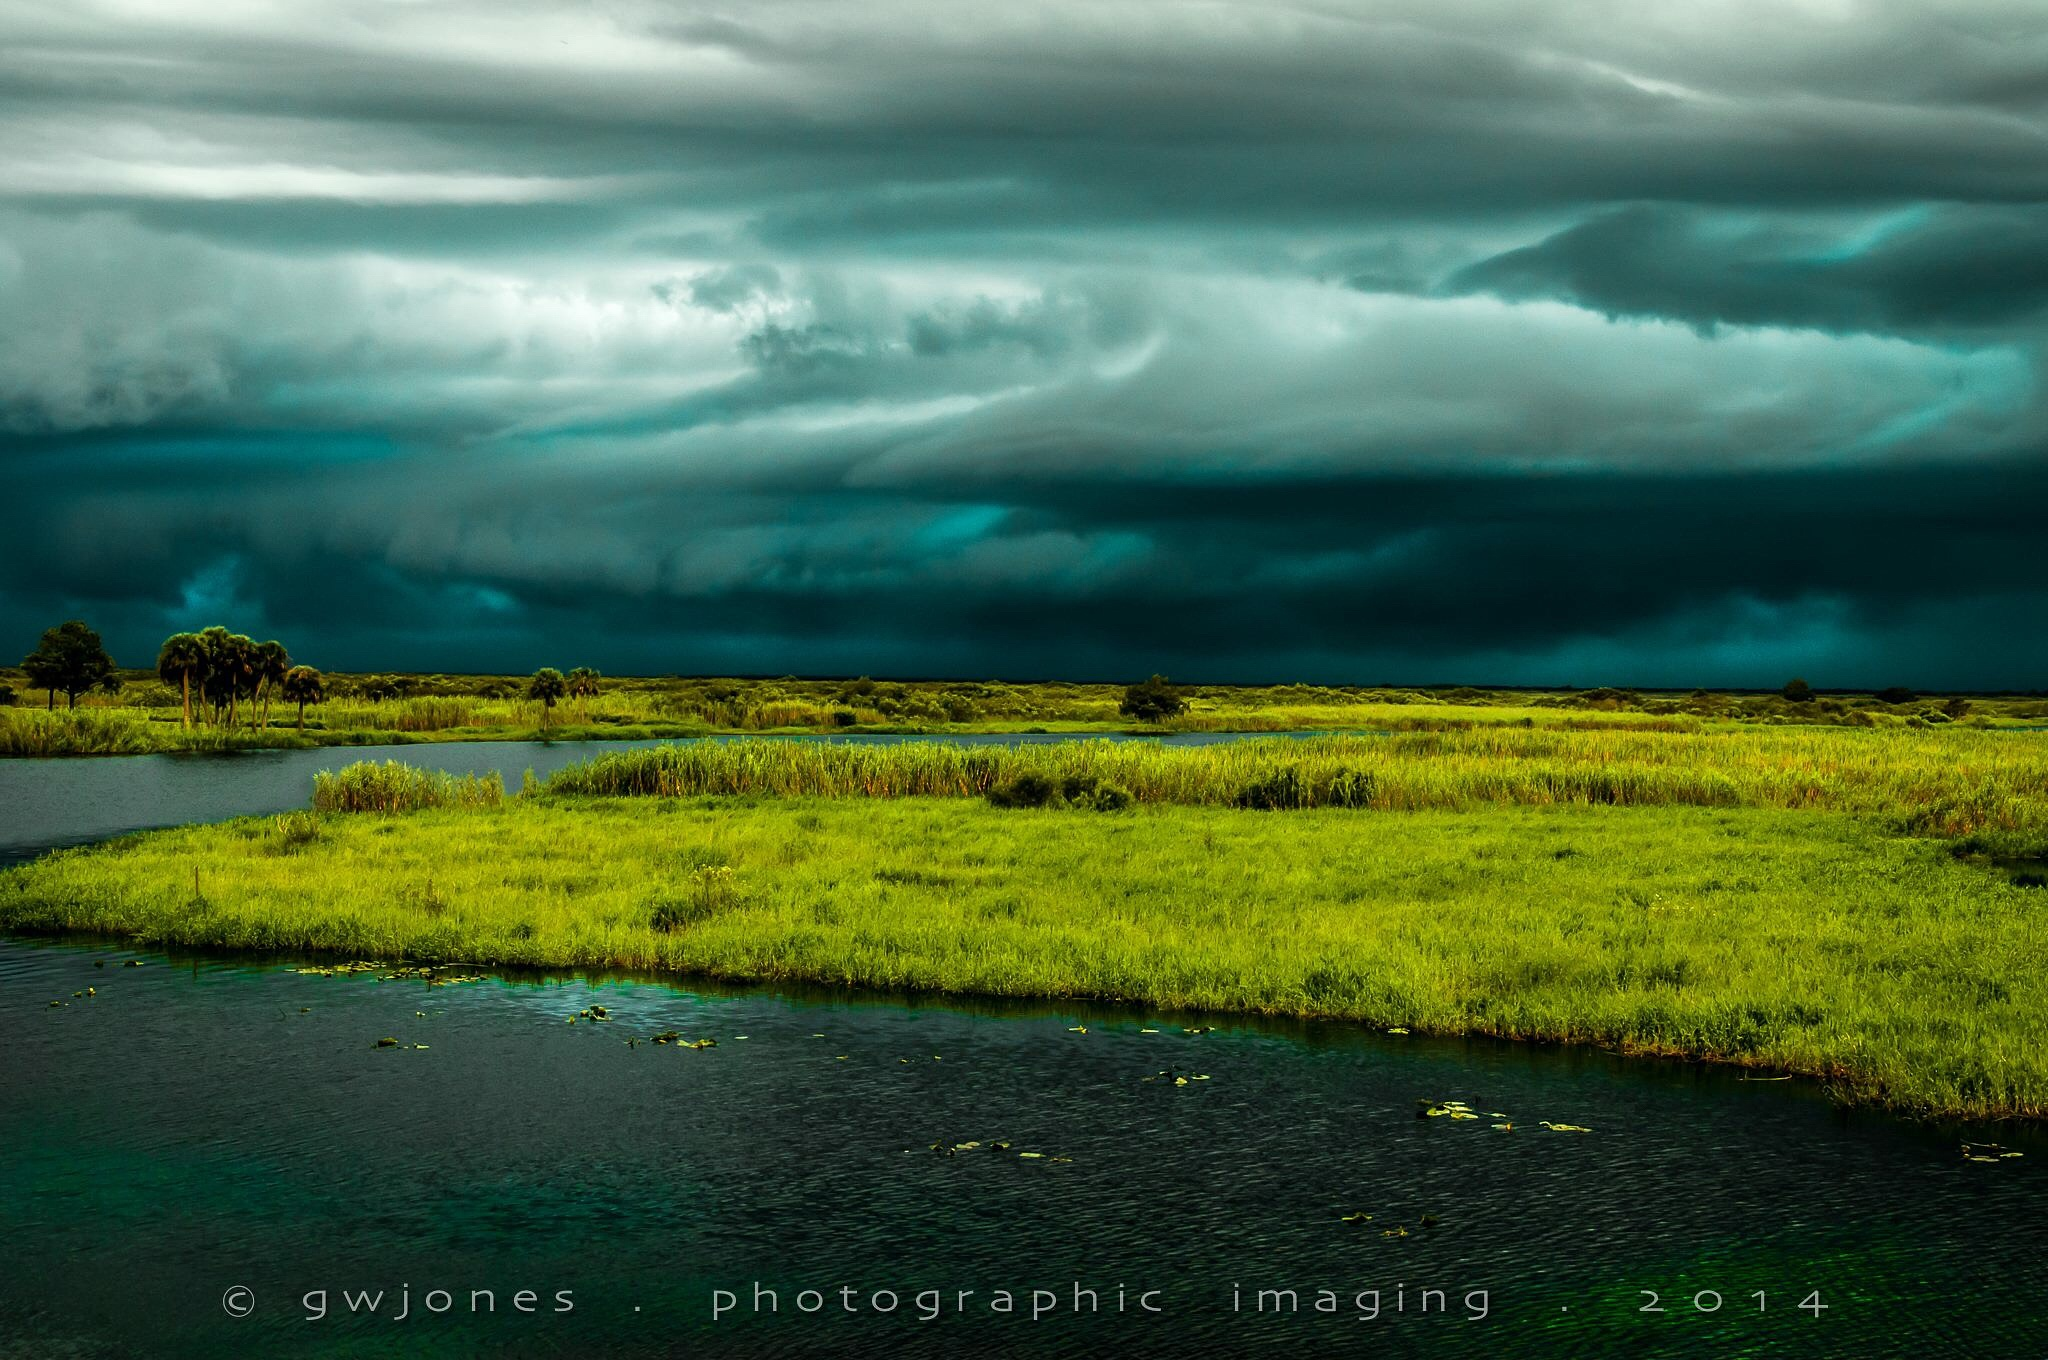 Storm over the St. Johns River by gwjones317